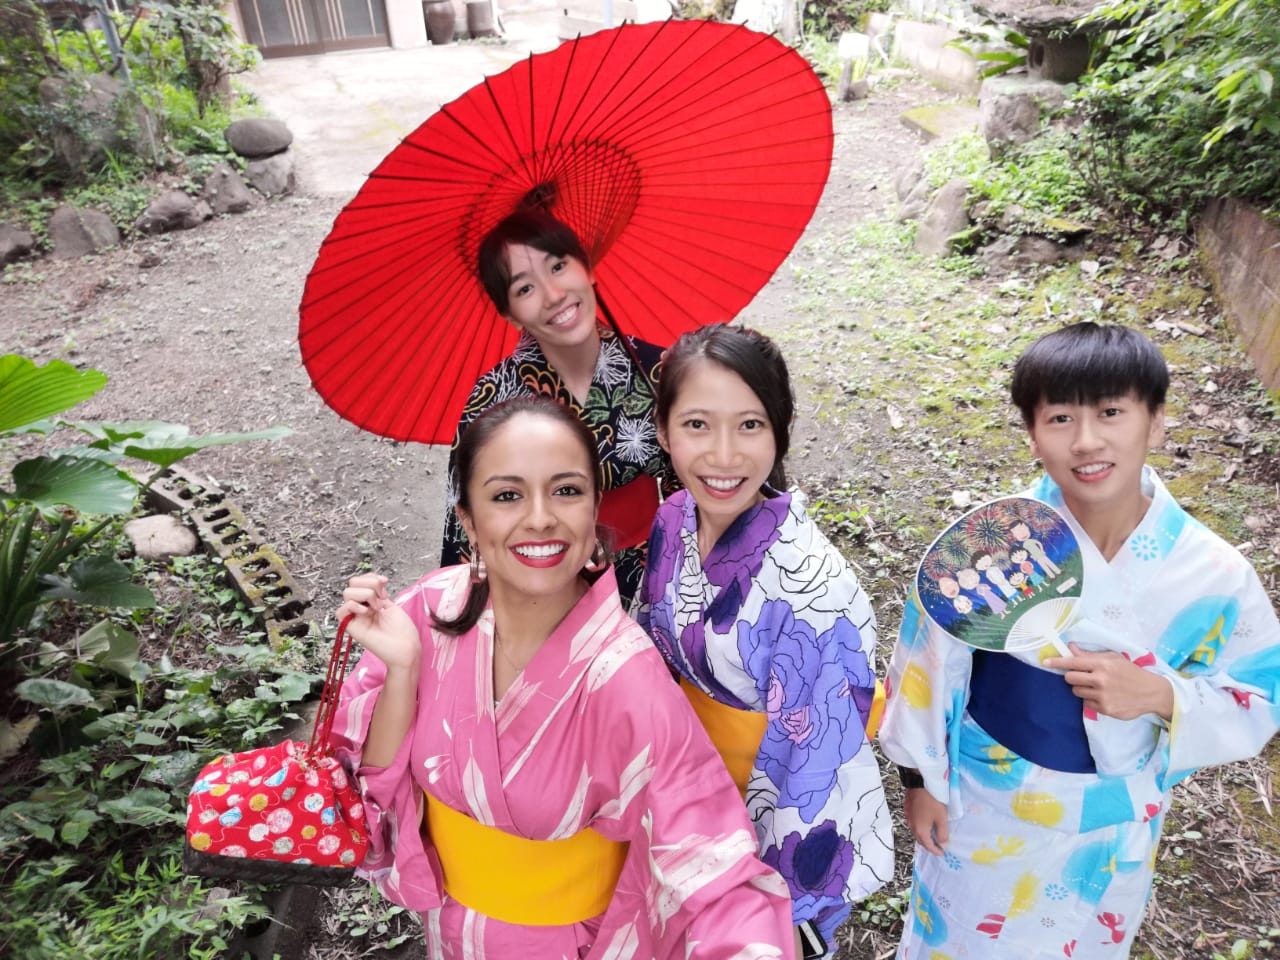 Group wearing yukata.